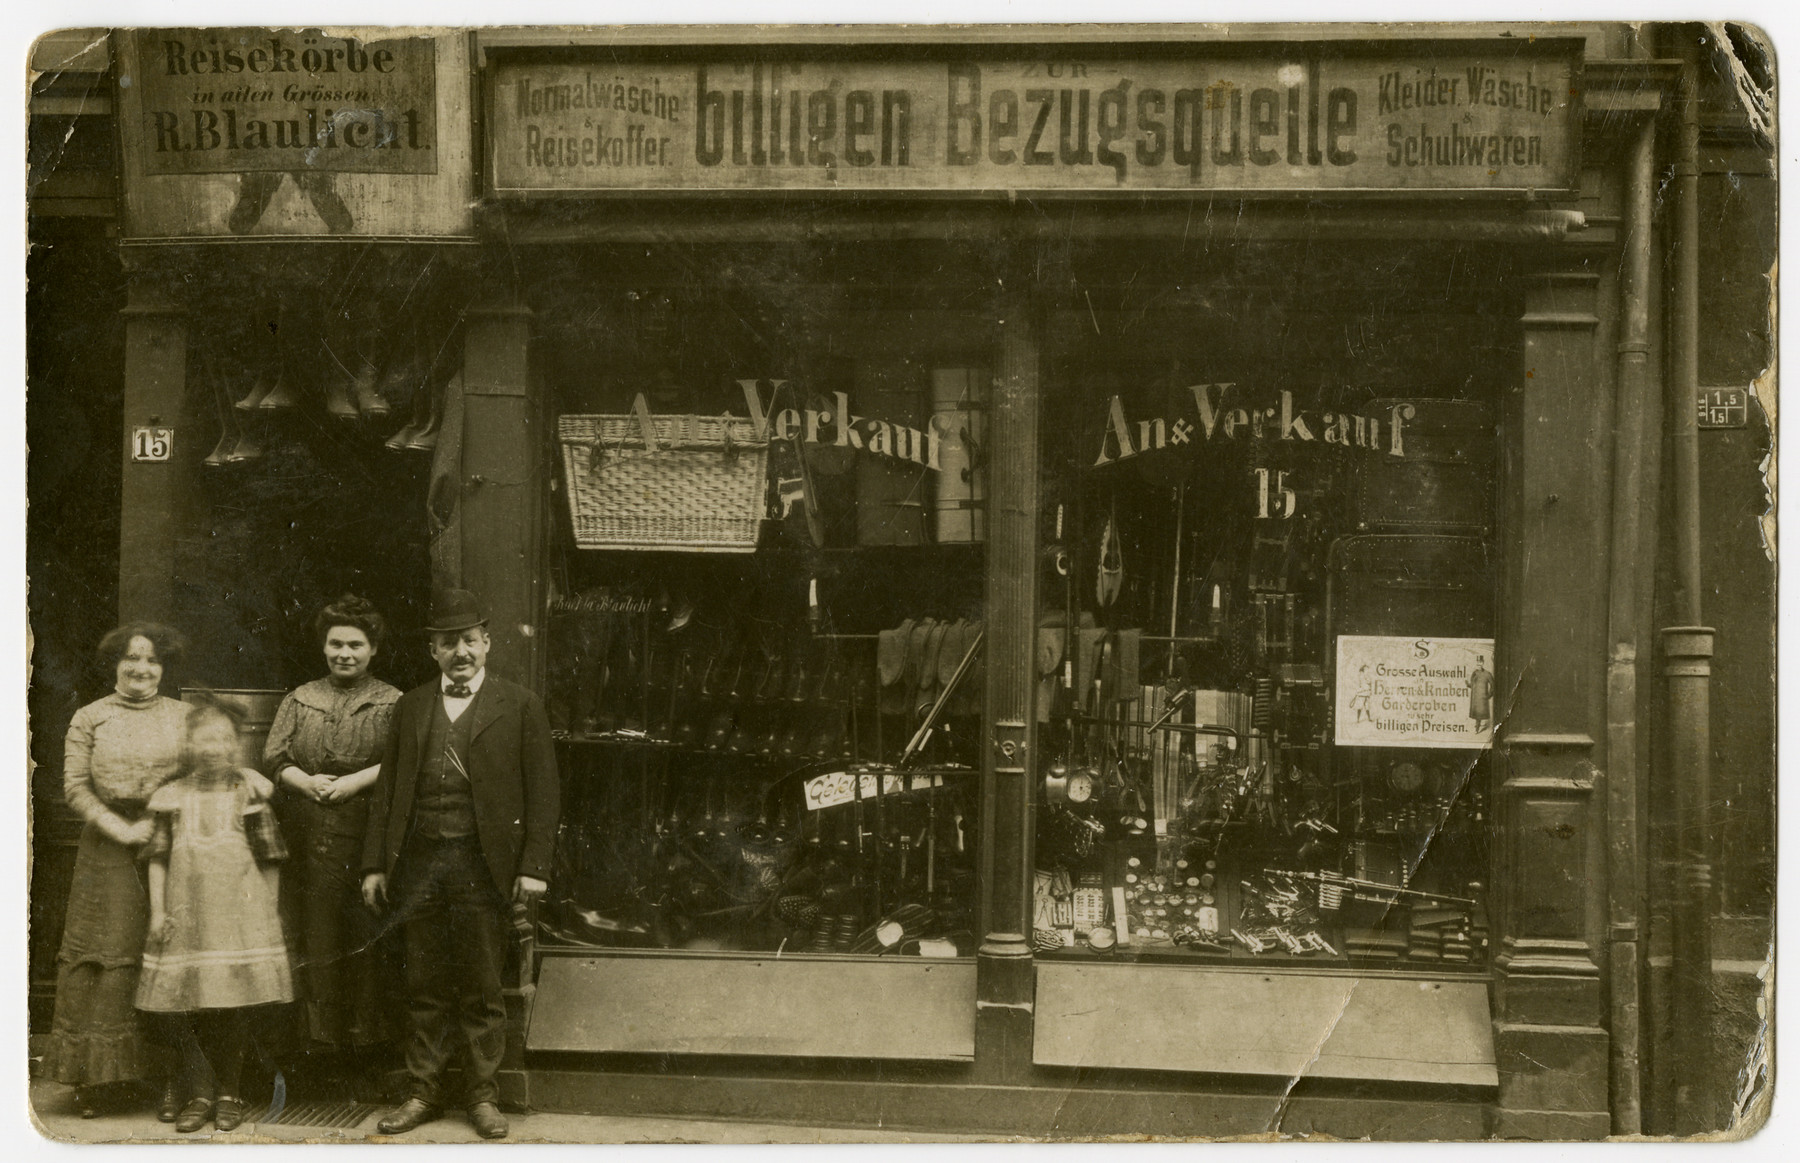 Members of the Blaulicht family, German-Jews of Polish ancestry, pose for a group portrait. in front of their general store.